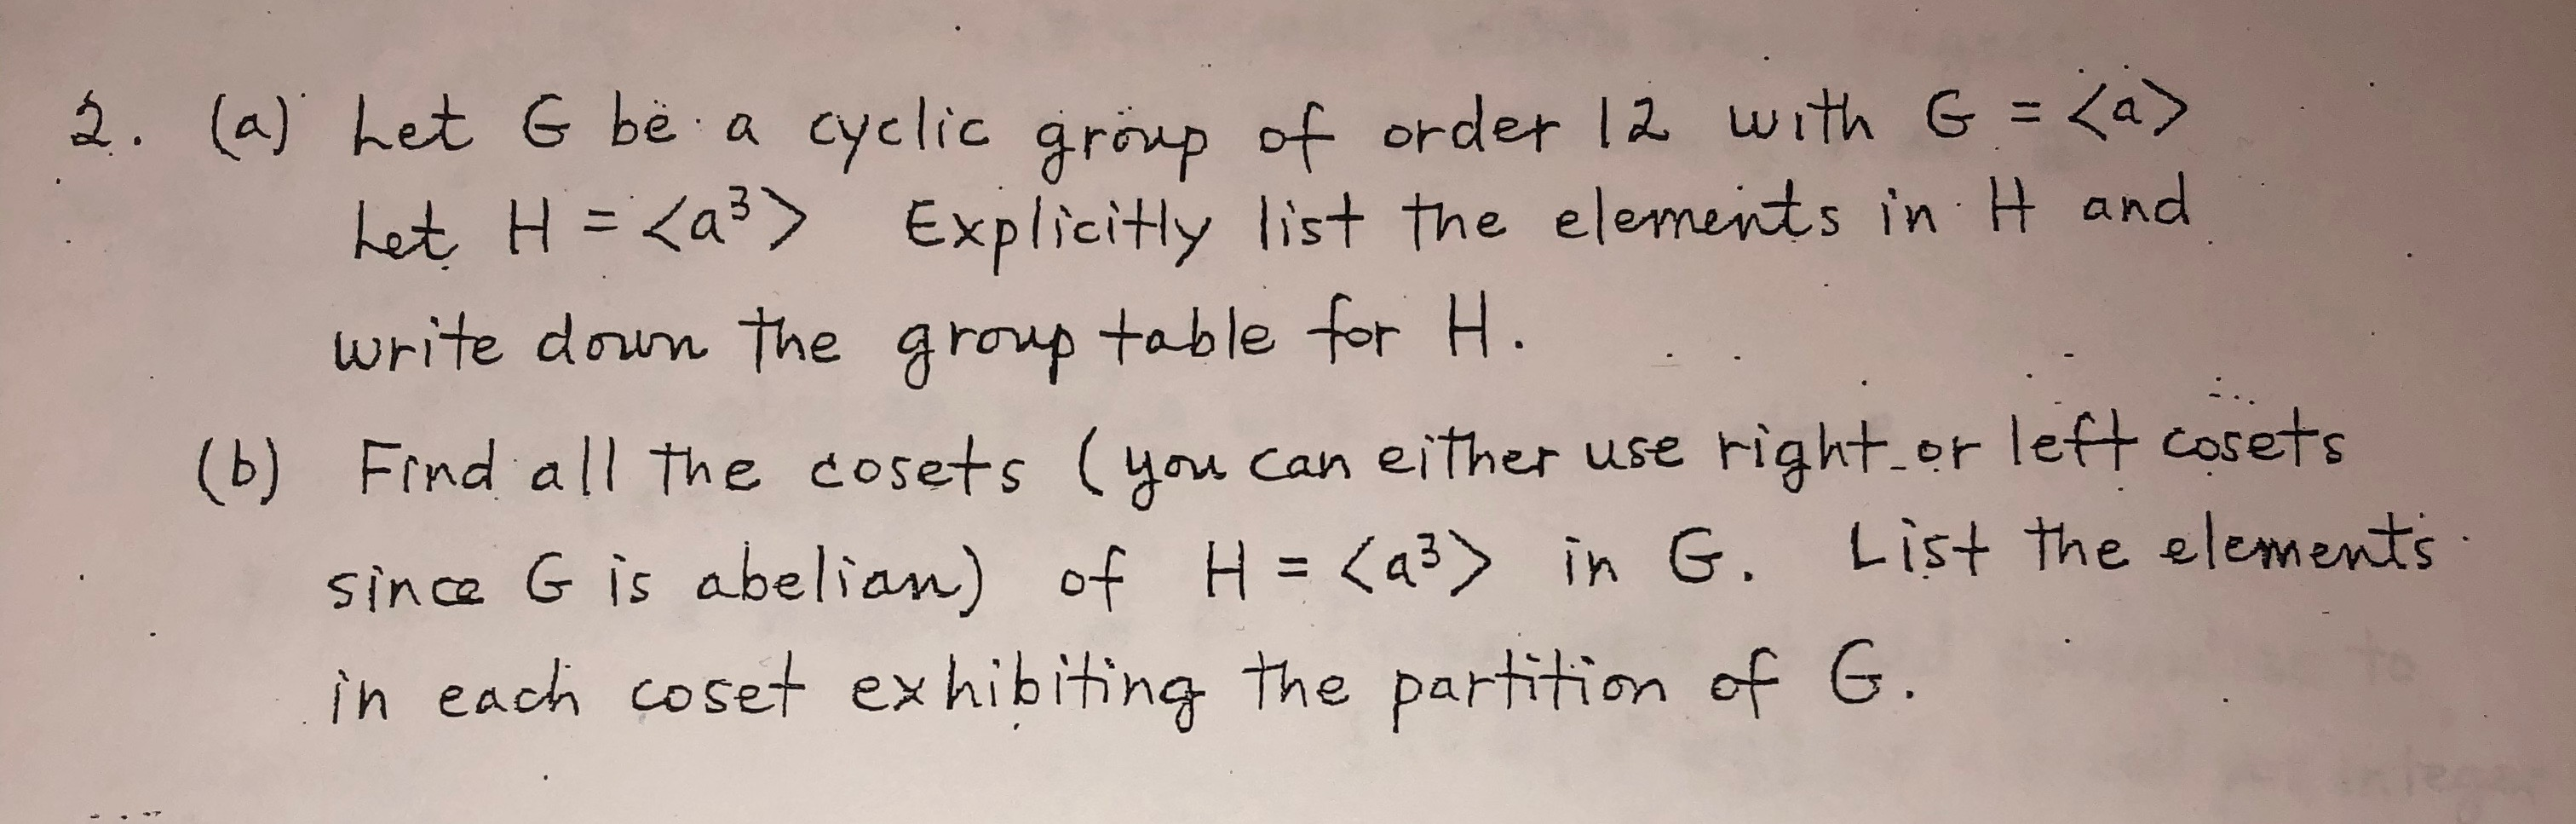 Table H Et H solved: 2. (a) het g be a cyclic gronp of order 12 with g